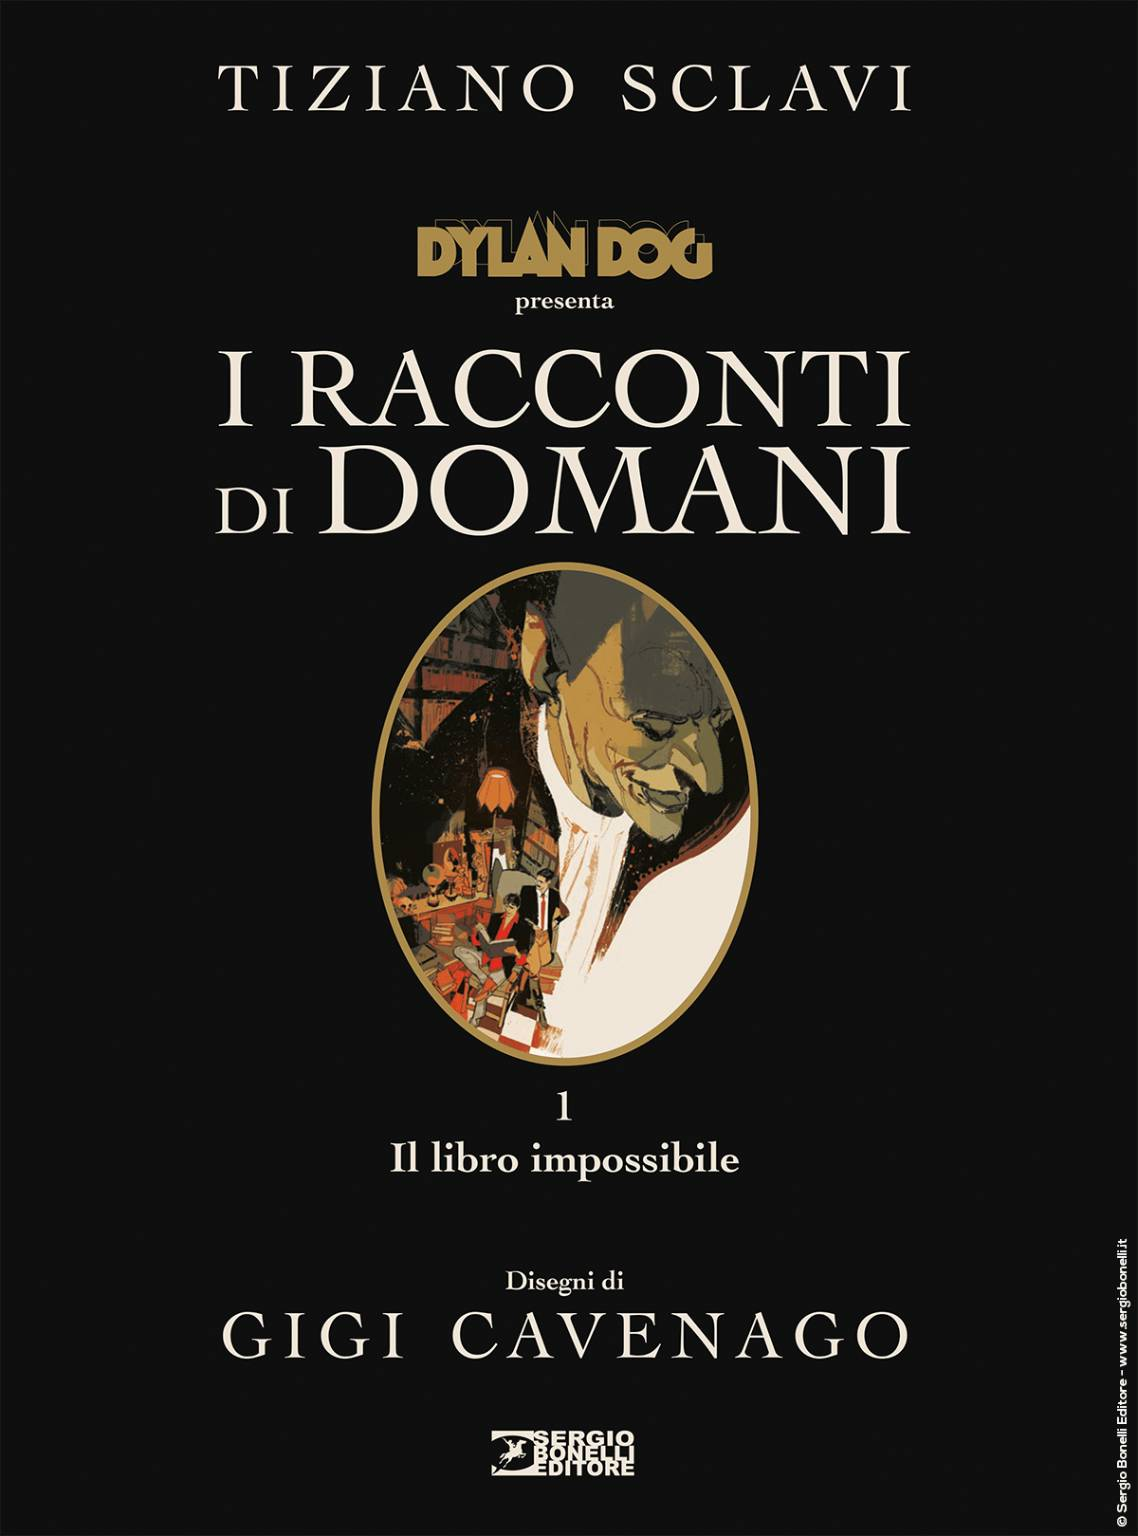 Dylan Dog a Lucca 2019